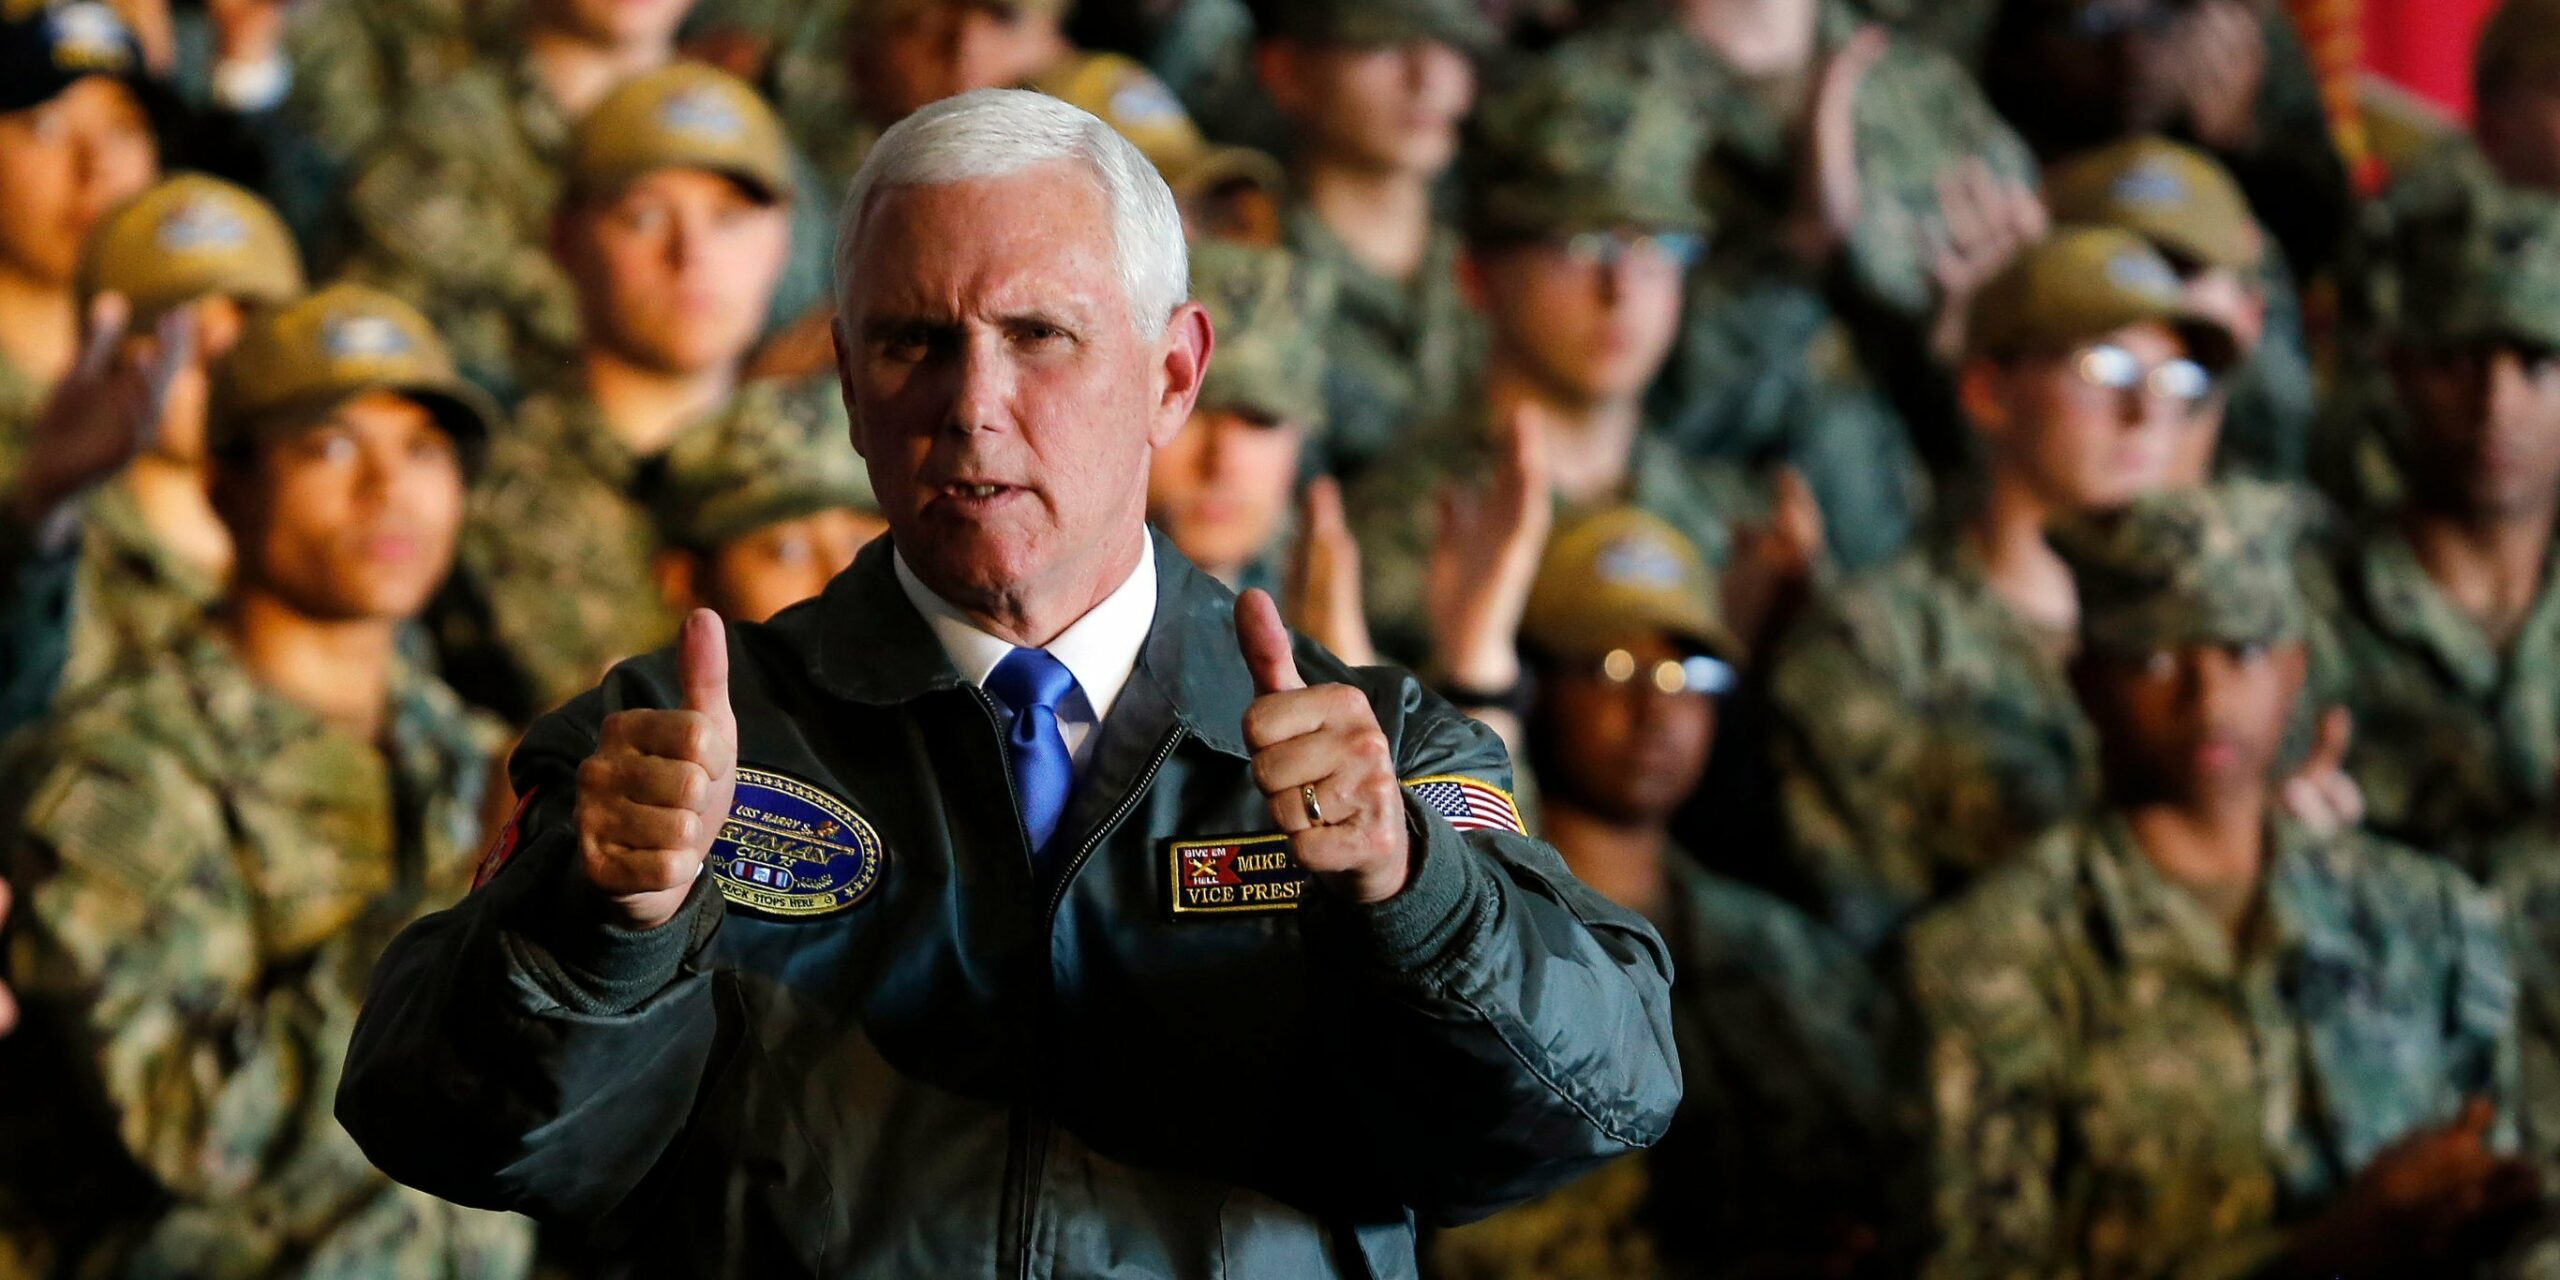 Navy sailors were told to 'clap like we're at a strip club' for Pence's aircraft carrier visit